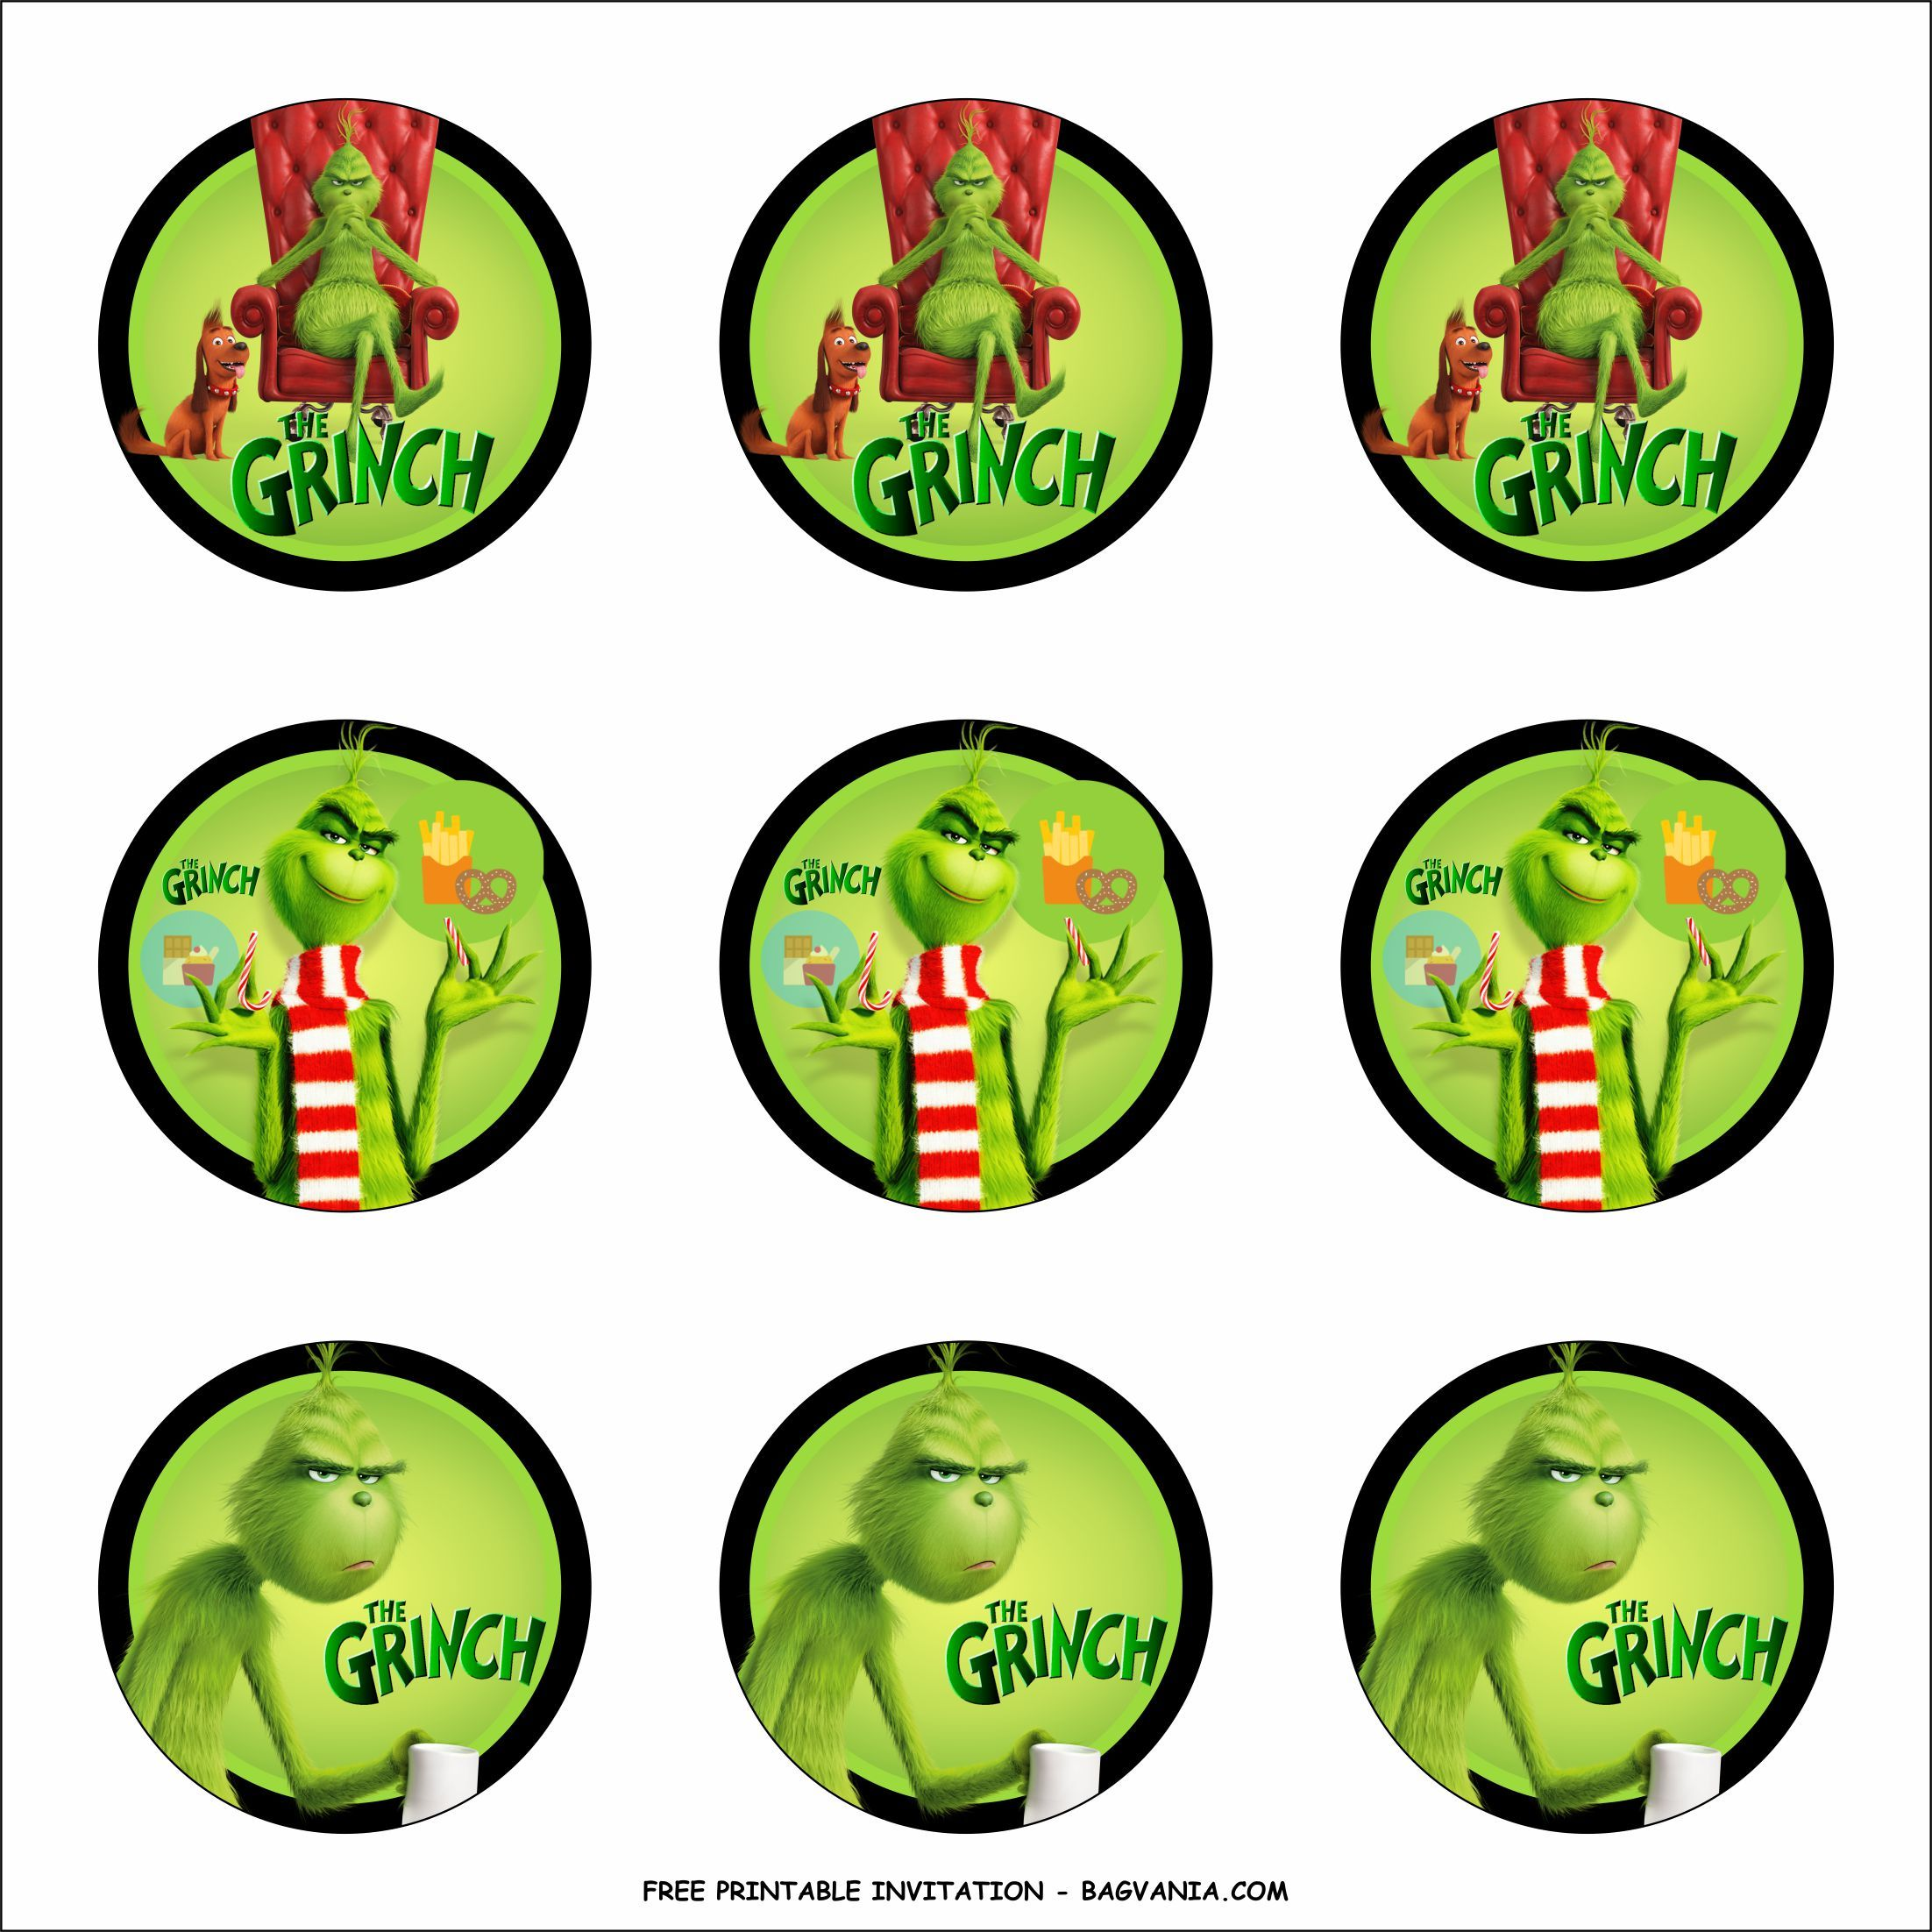 Free Printable The Grinch Birthday Party Kits Template Birthday Party Kits Grinch Decorations Grinch